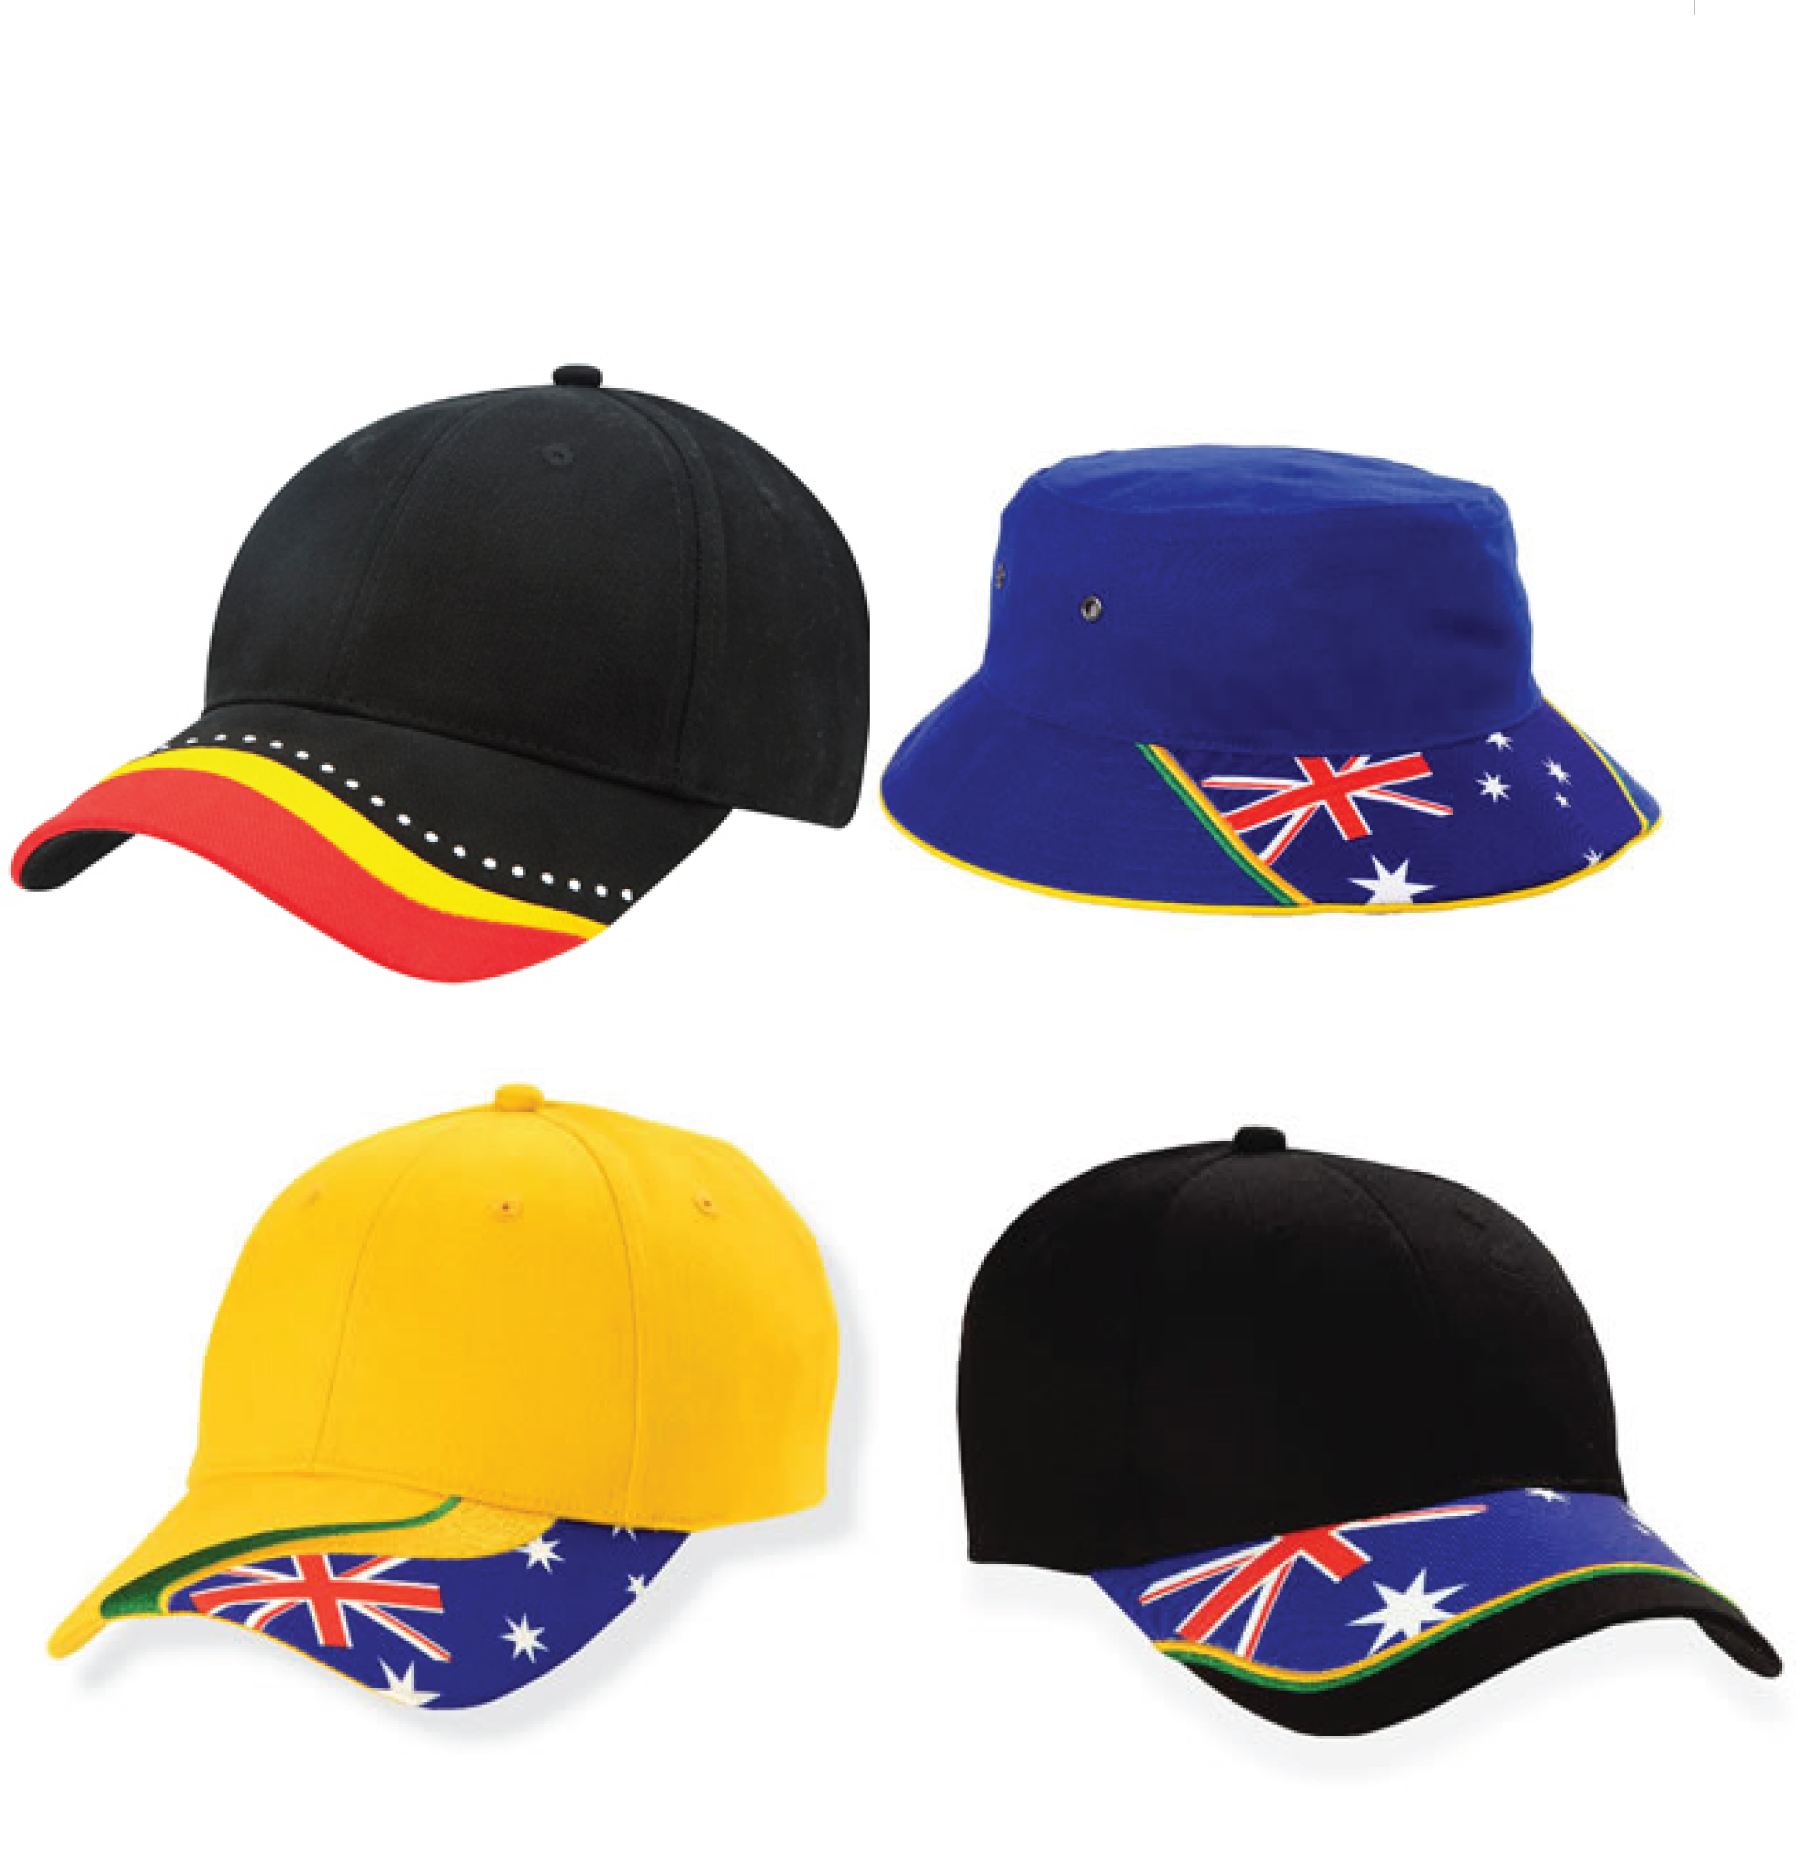 Aussie Themed Caps